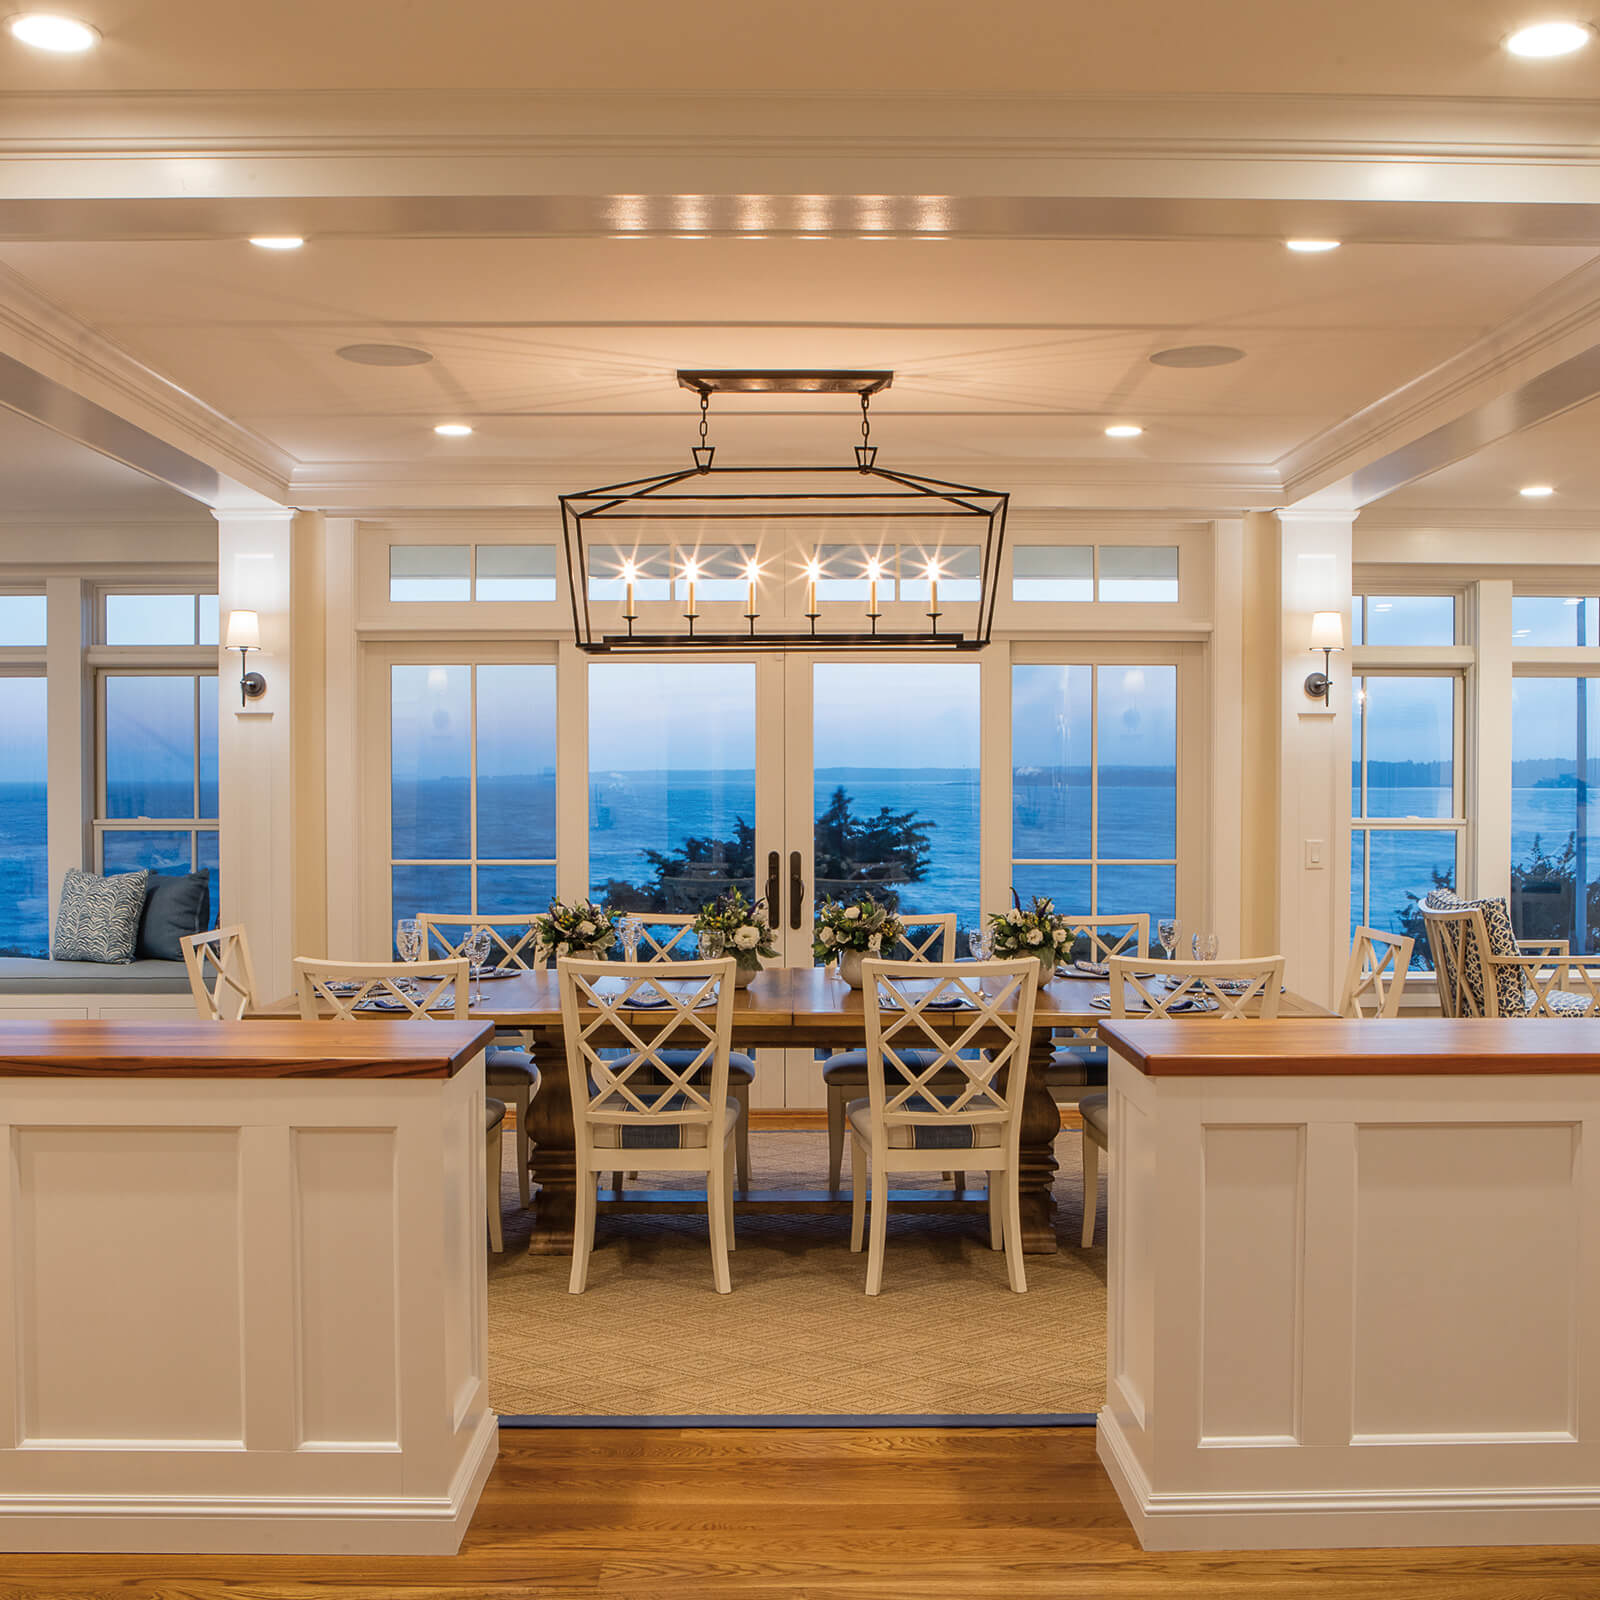 Kitchen and Dinning room with tray ceiling with a waterfront view through Marvin Elevate Sliding French Door and Double Hung Windows